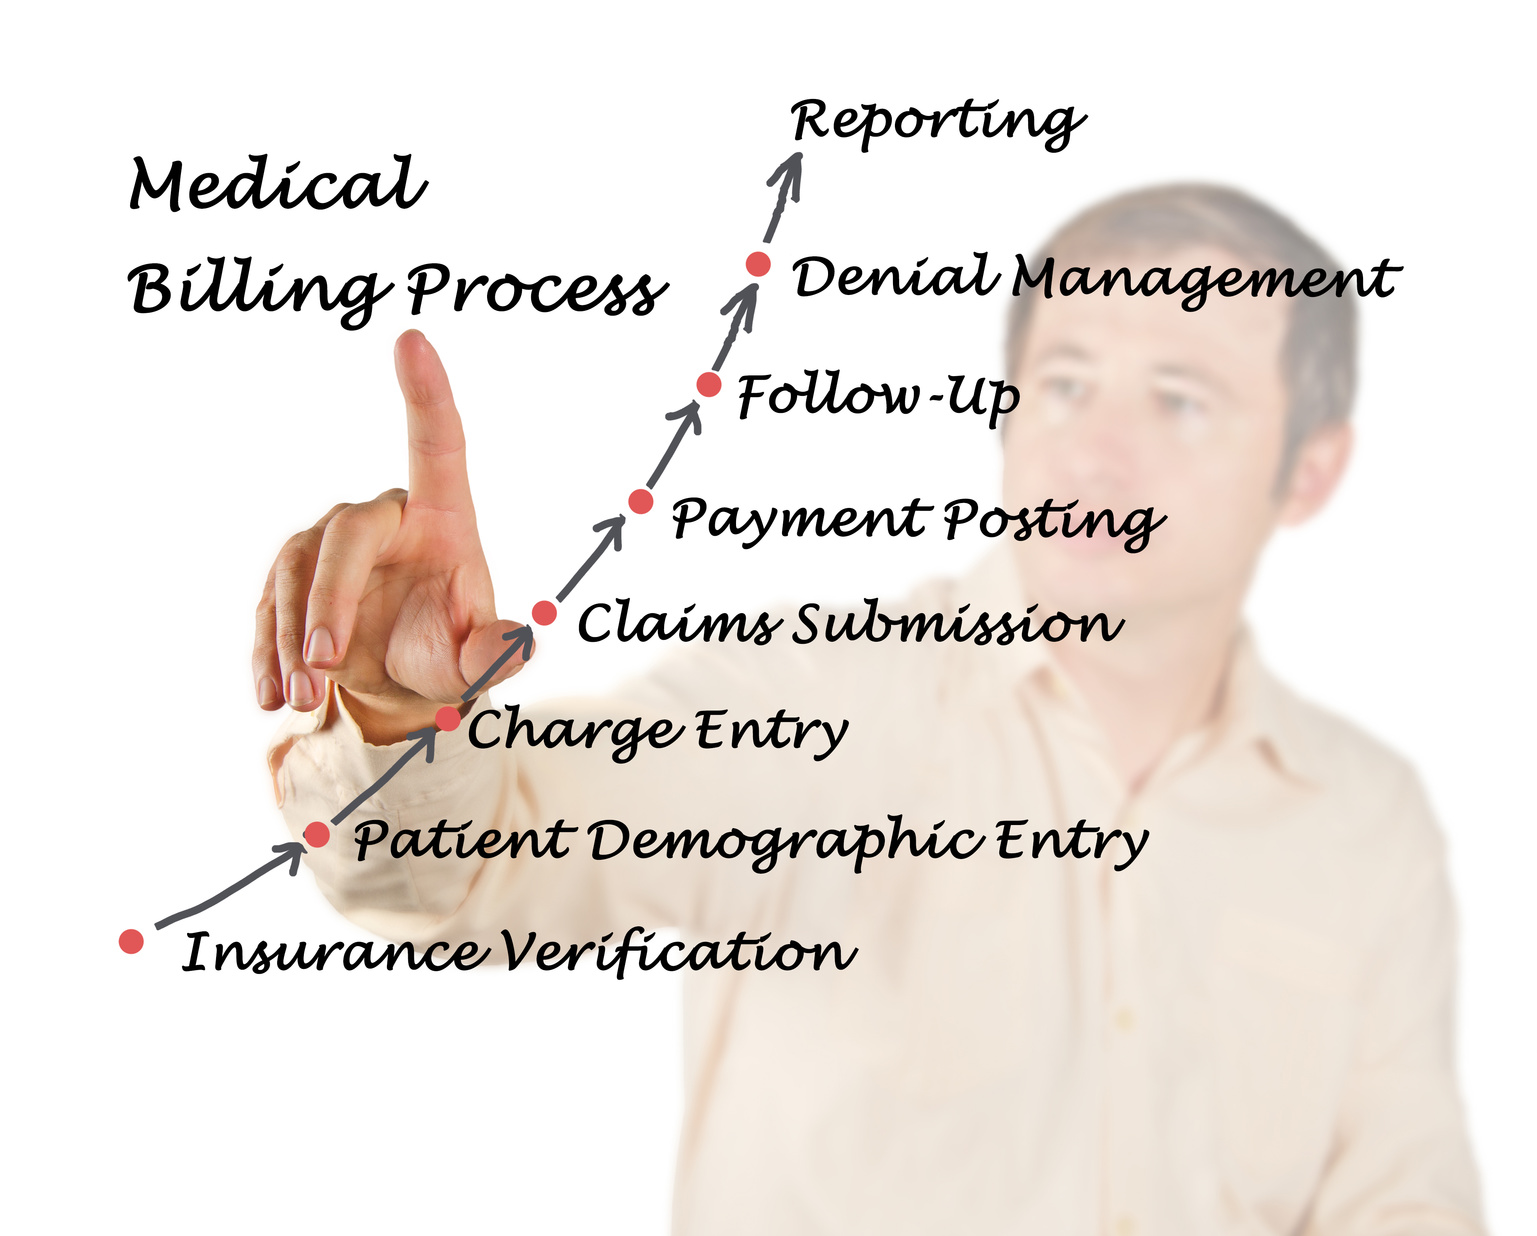 Medical Billing Software – Benefits and Uses